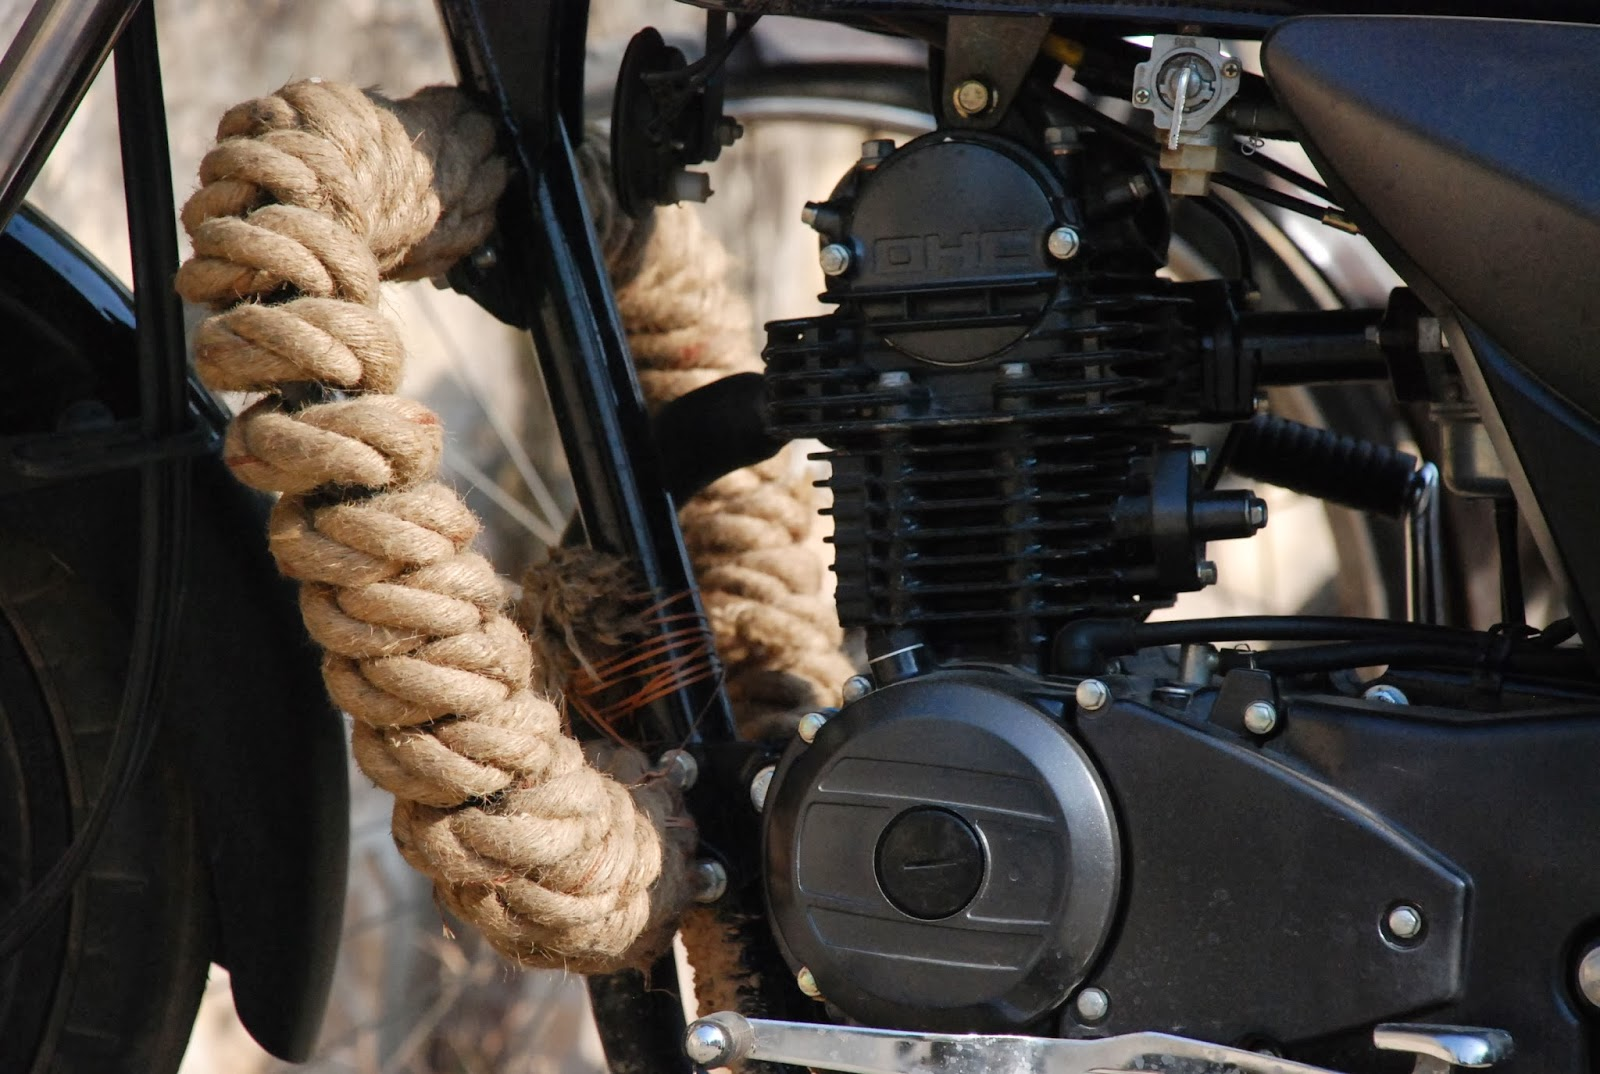 http://freelancethink.blogspot.com/2013/11/5-cheap-ways-to-protect-your-motorcycle.html